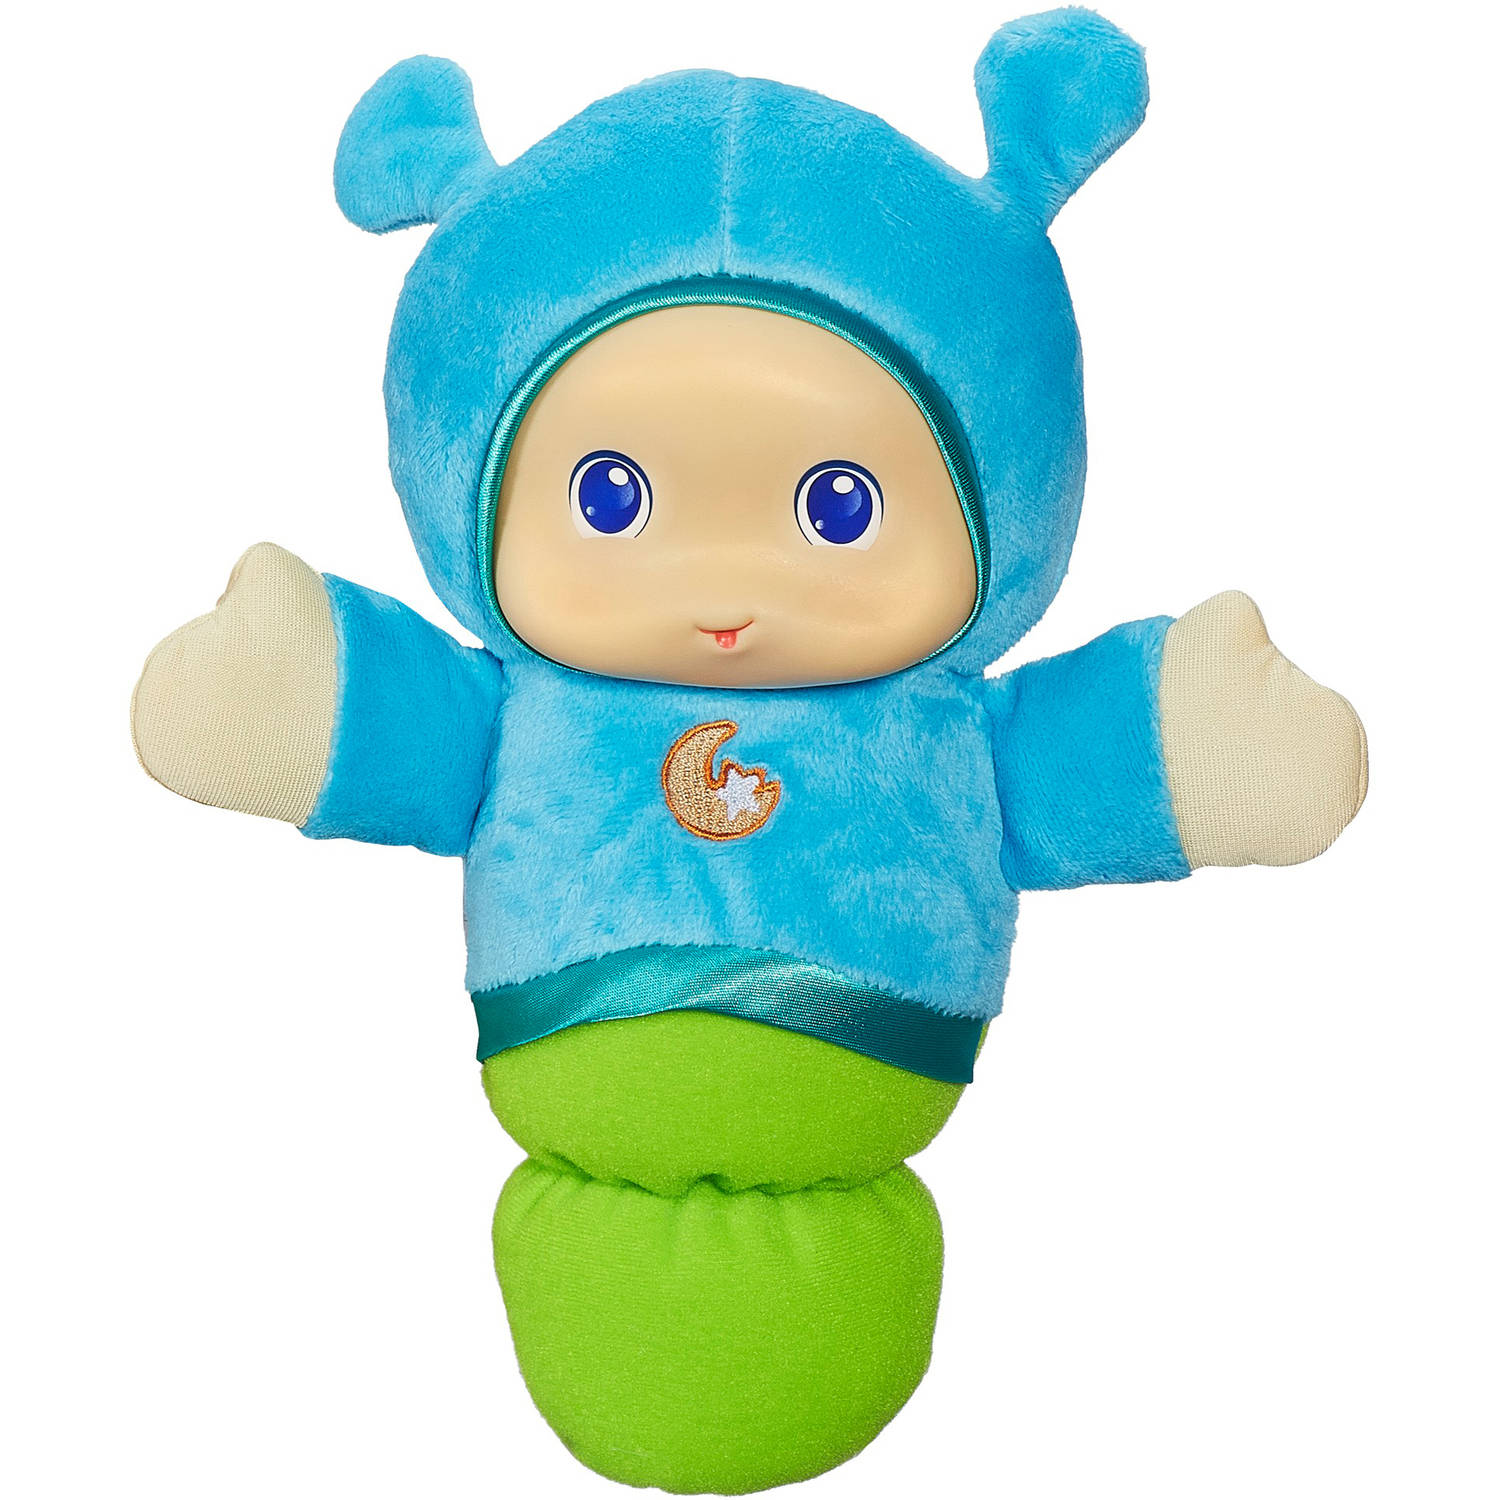 playskool glow worm instructions